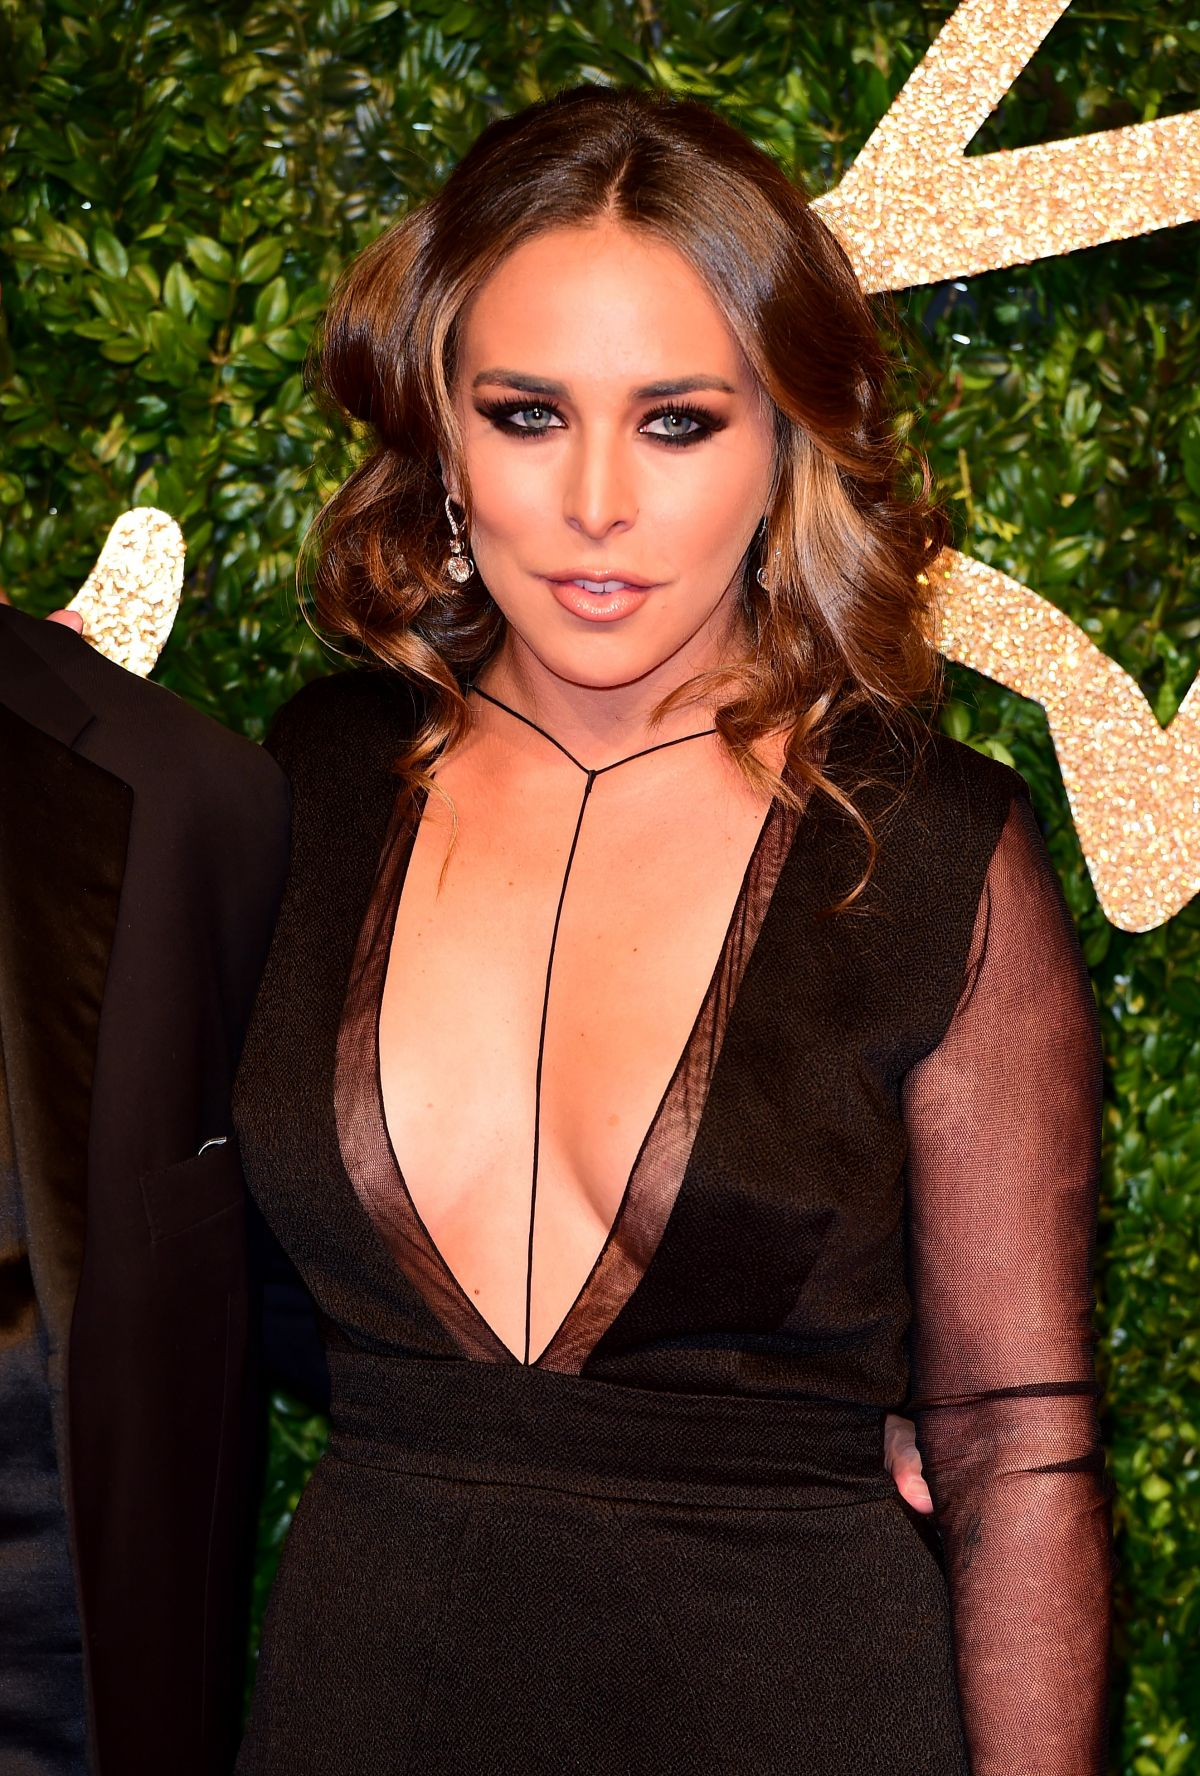 CHLOE GREEN at 2015 British Fashion Awards in London 11/23/2015